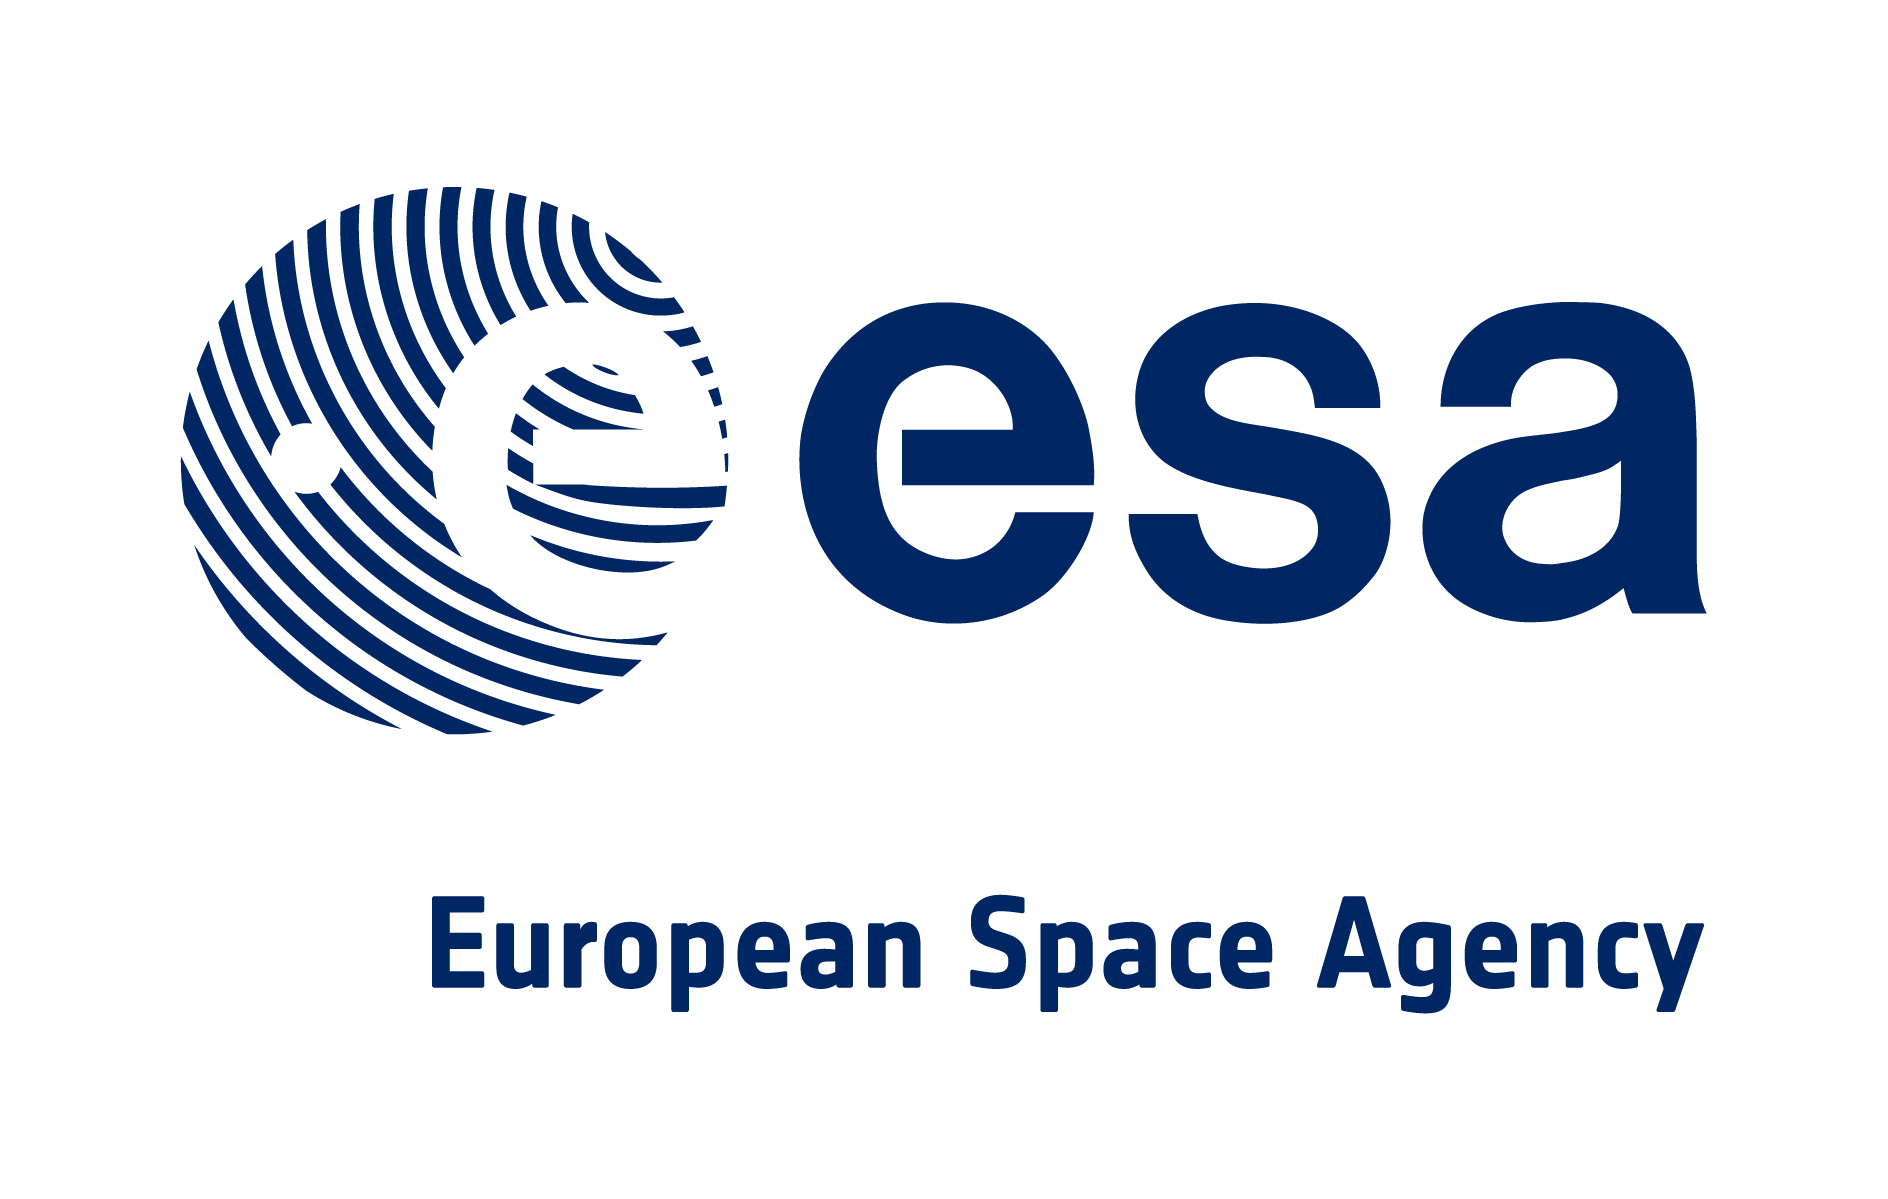 Head of the Structures, Mechanisms and Materials Division, European Space Agency